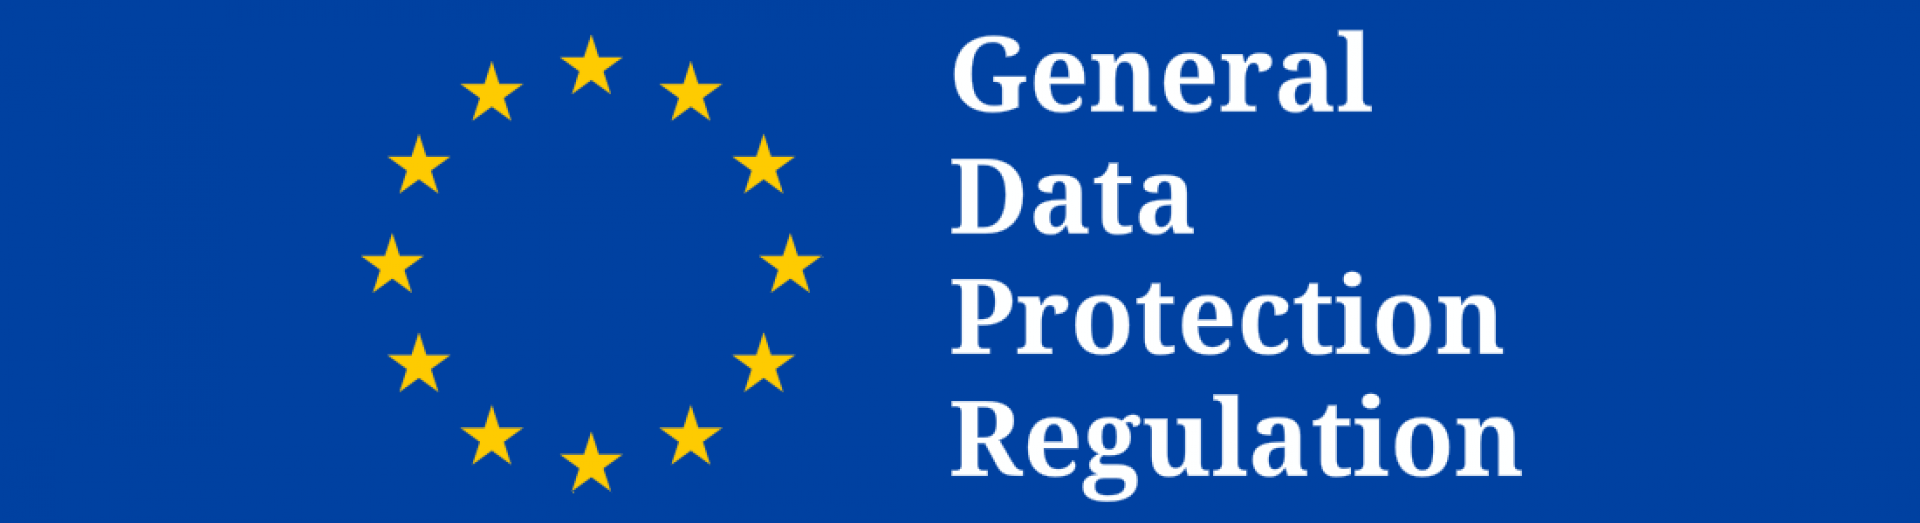 Europe's Genereal Data Protection Regulation (GDPR) and how it affects you